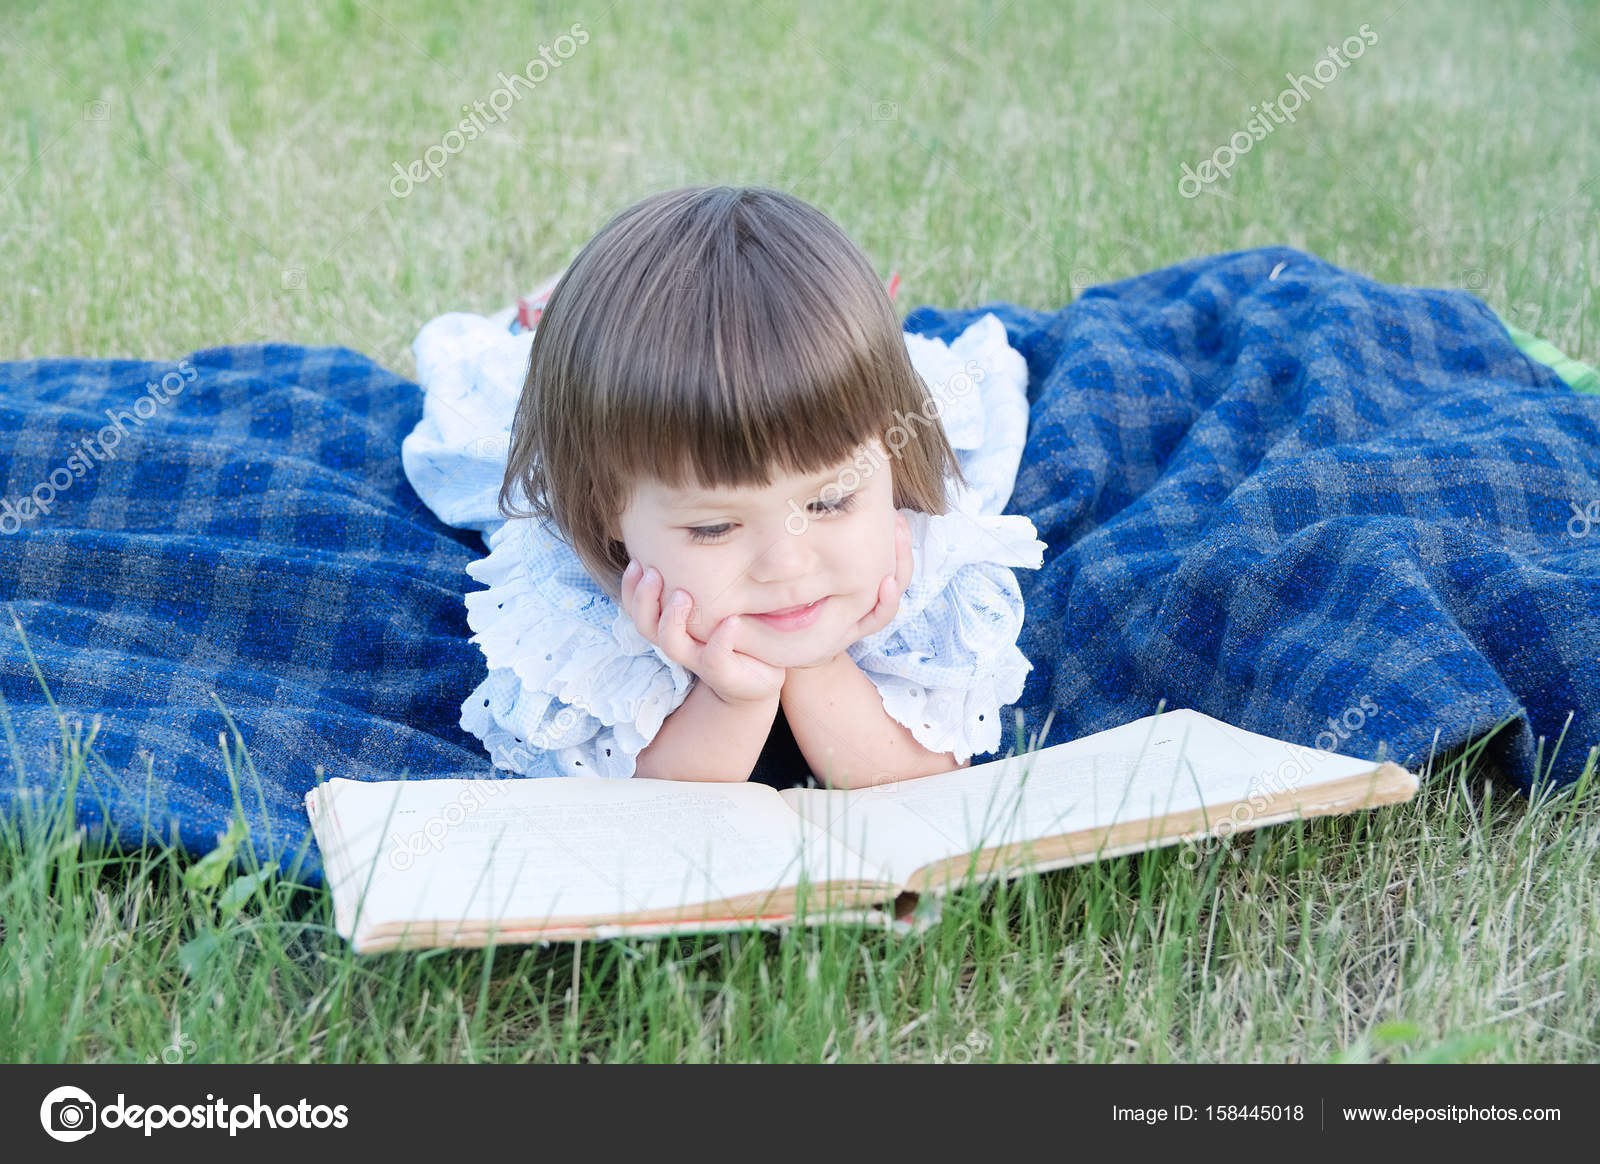 little girl reading book lying on stomach outdoor, smiling cute